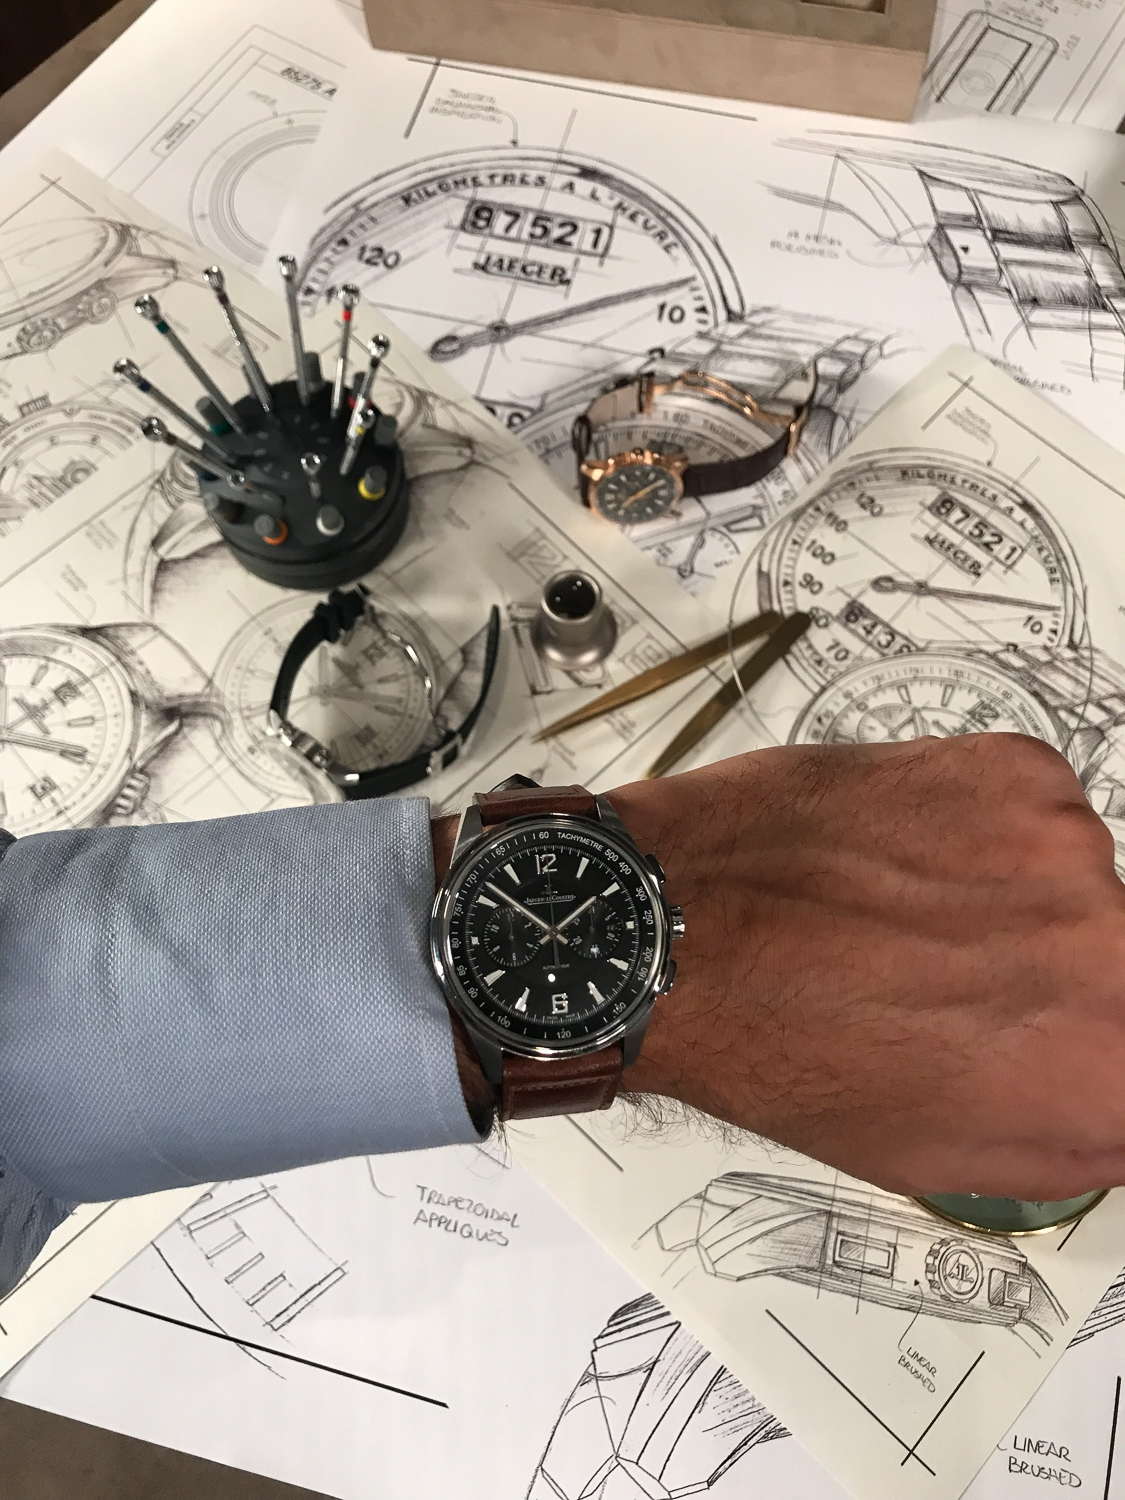 Review: SIHH 2018  My impressions on the latest collections presented at the Salon International de la Haute Horlogerie